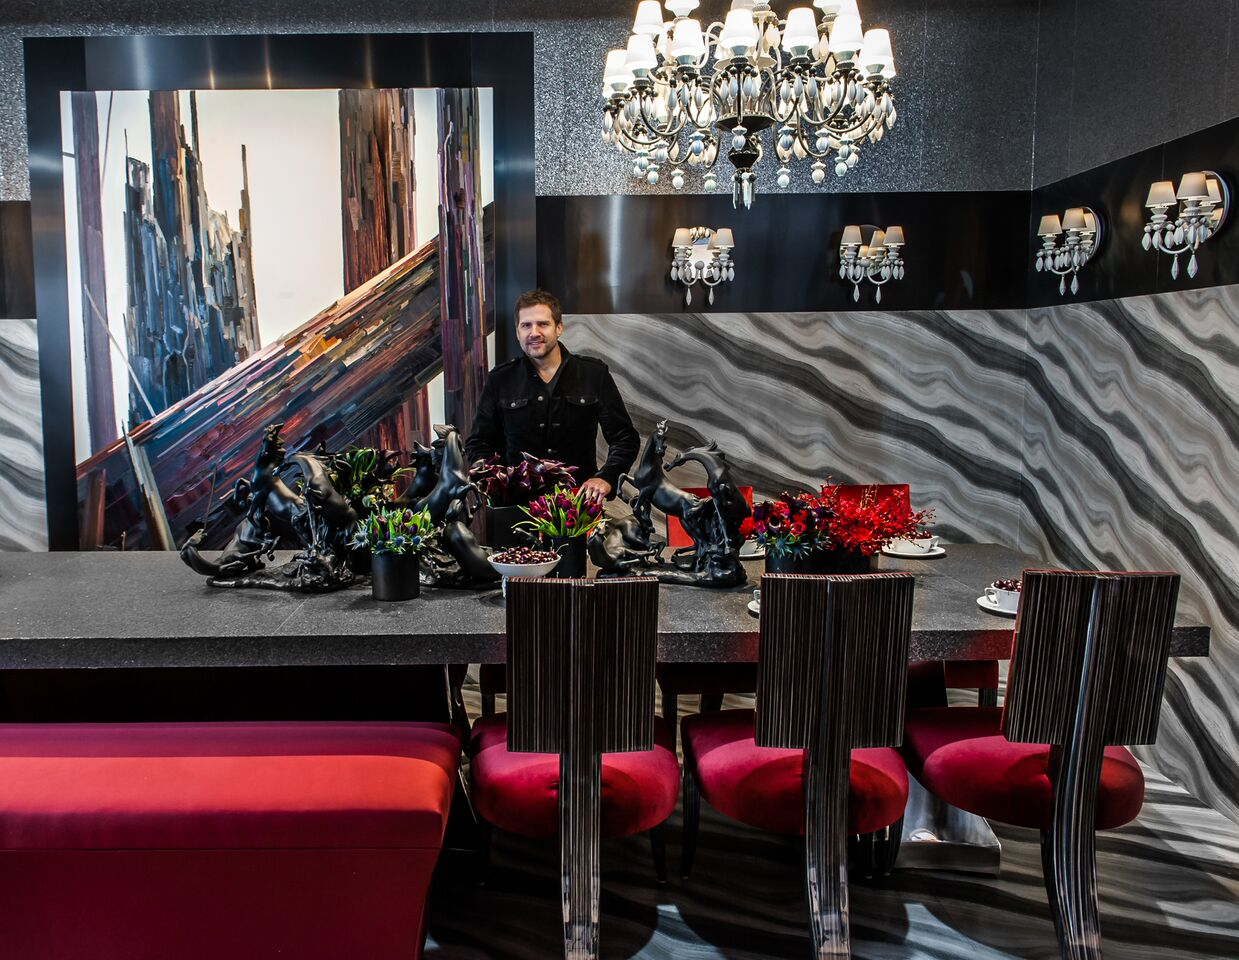 Top Design Talent Darrin Varden At The Lavish Table He Created For DIFFA,  The Design Industries Foundation Fighting AIDS Which Is One Of The  Countryu0027s ...